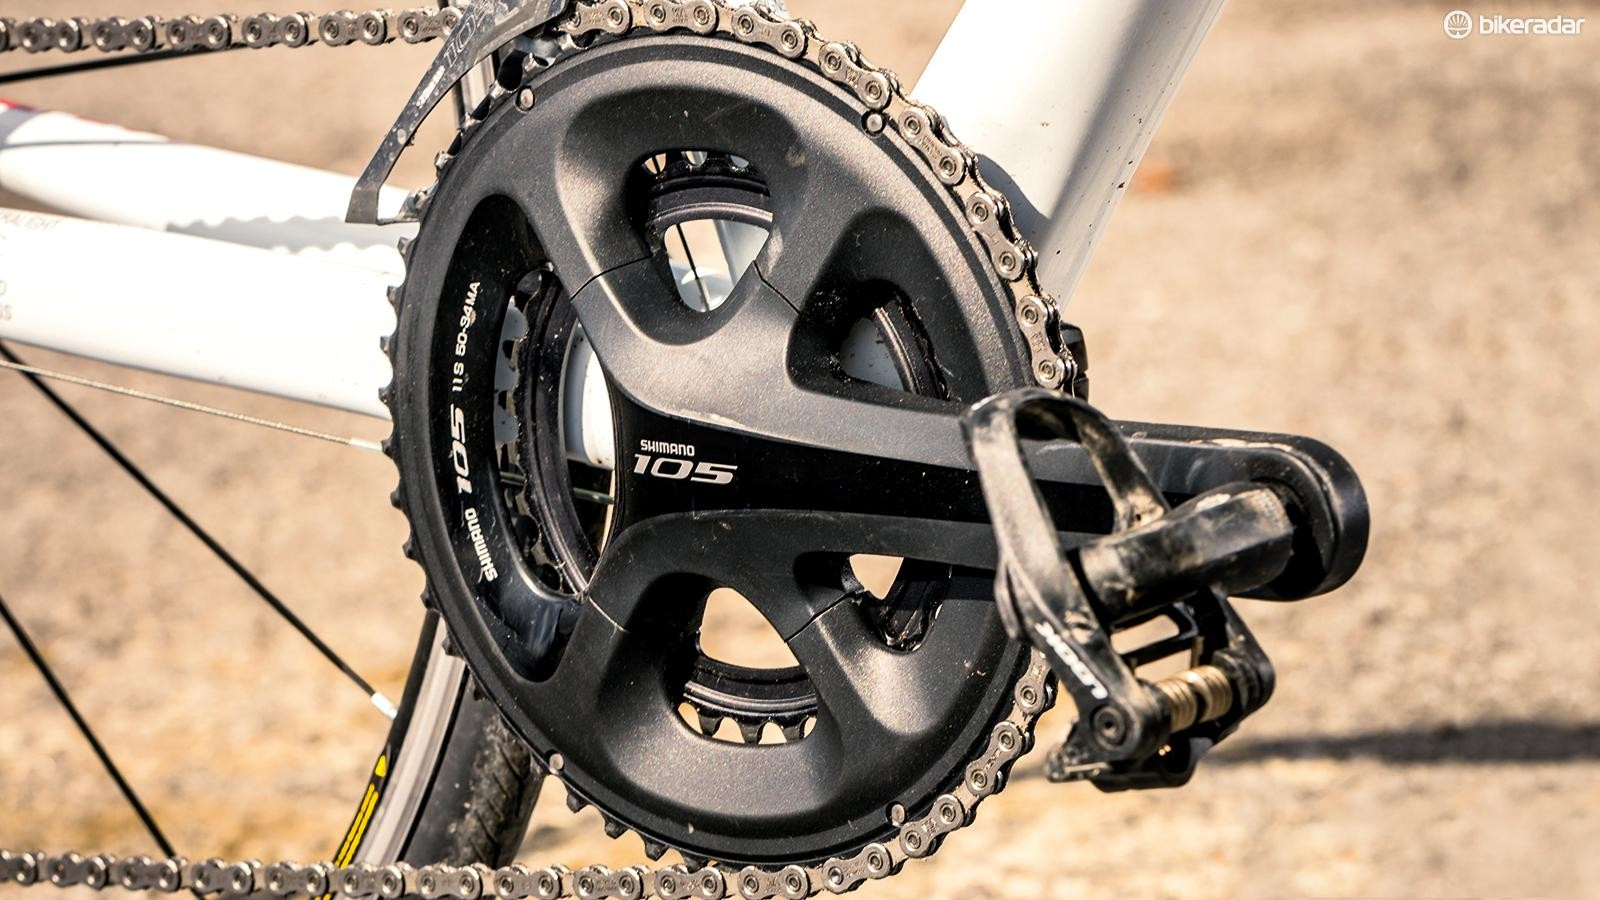 Shimano 105 crankset with hollow forged crank arms